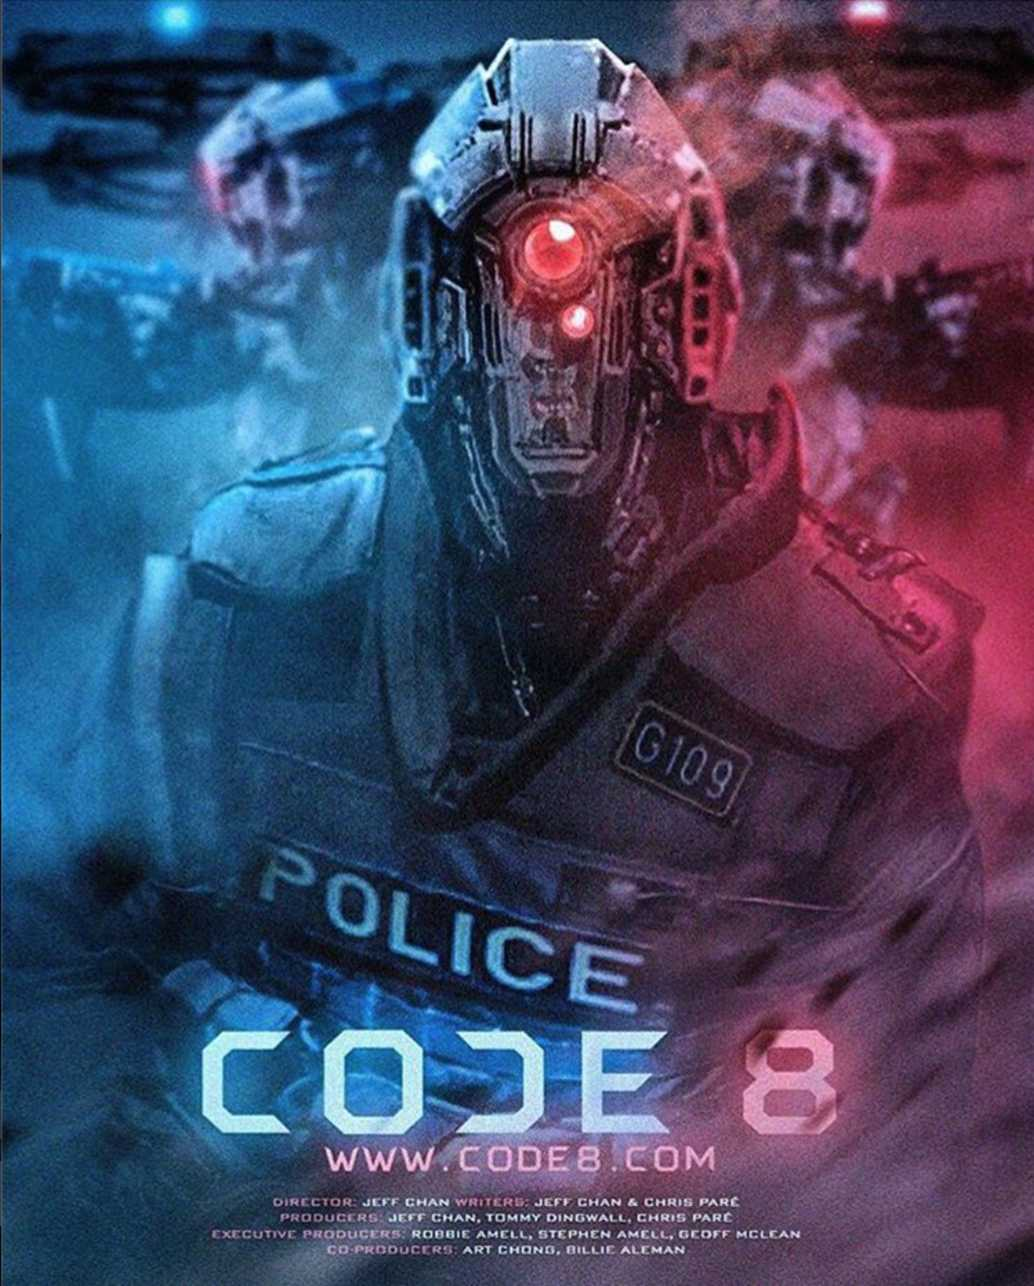 Exclusive: Writer Chris Pare Chats The Creation Of Code 8 | Chris Pare